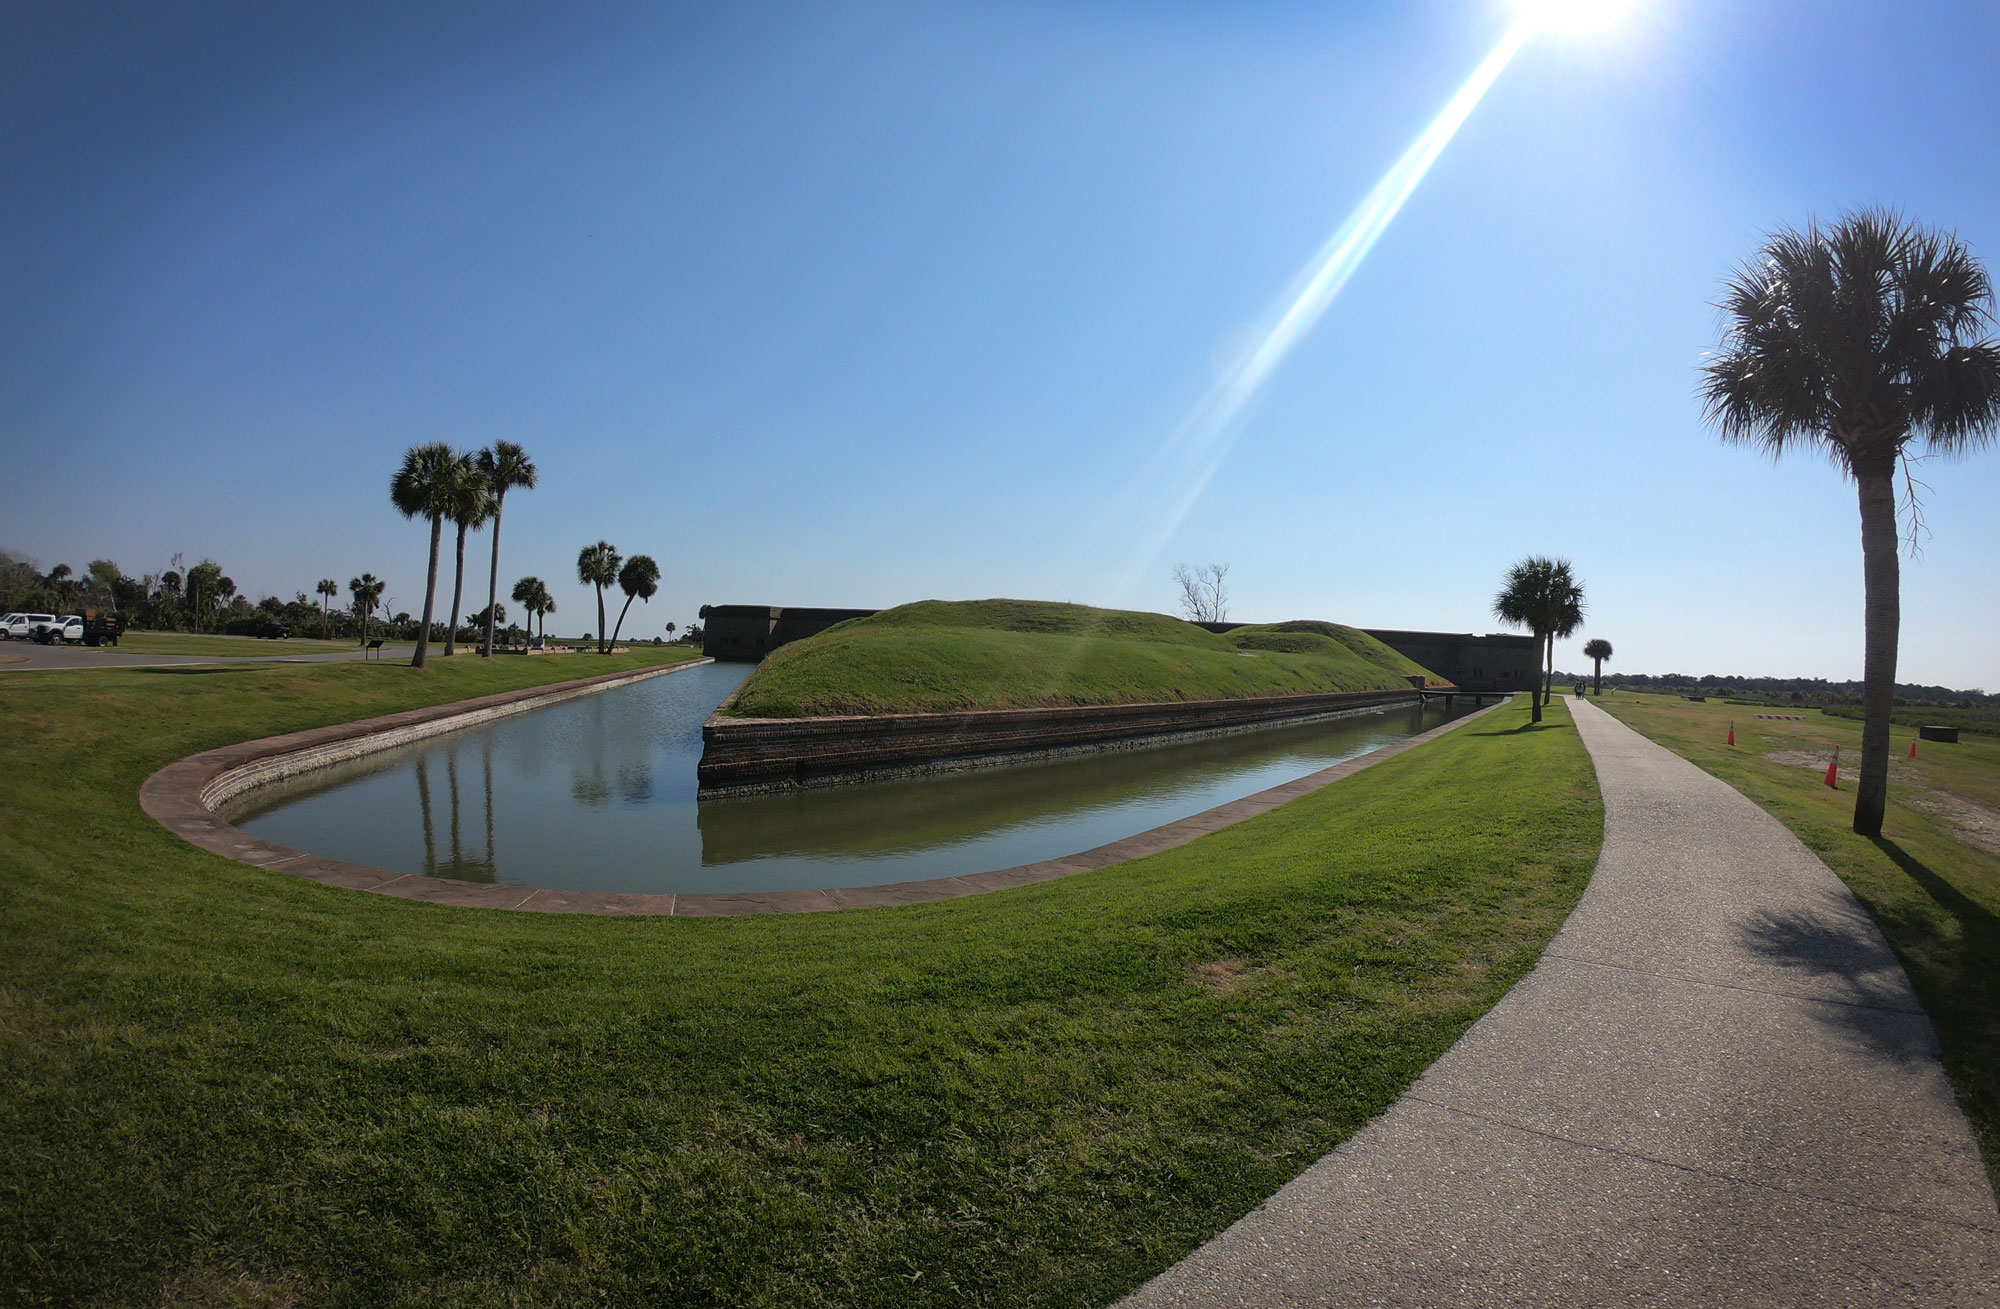 Horsebend moat at Fort Pulaski National Monument, Georgia